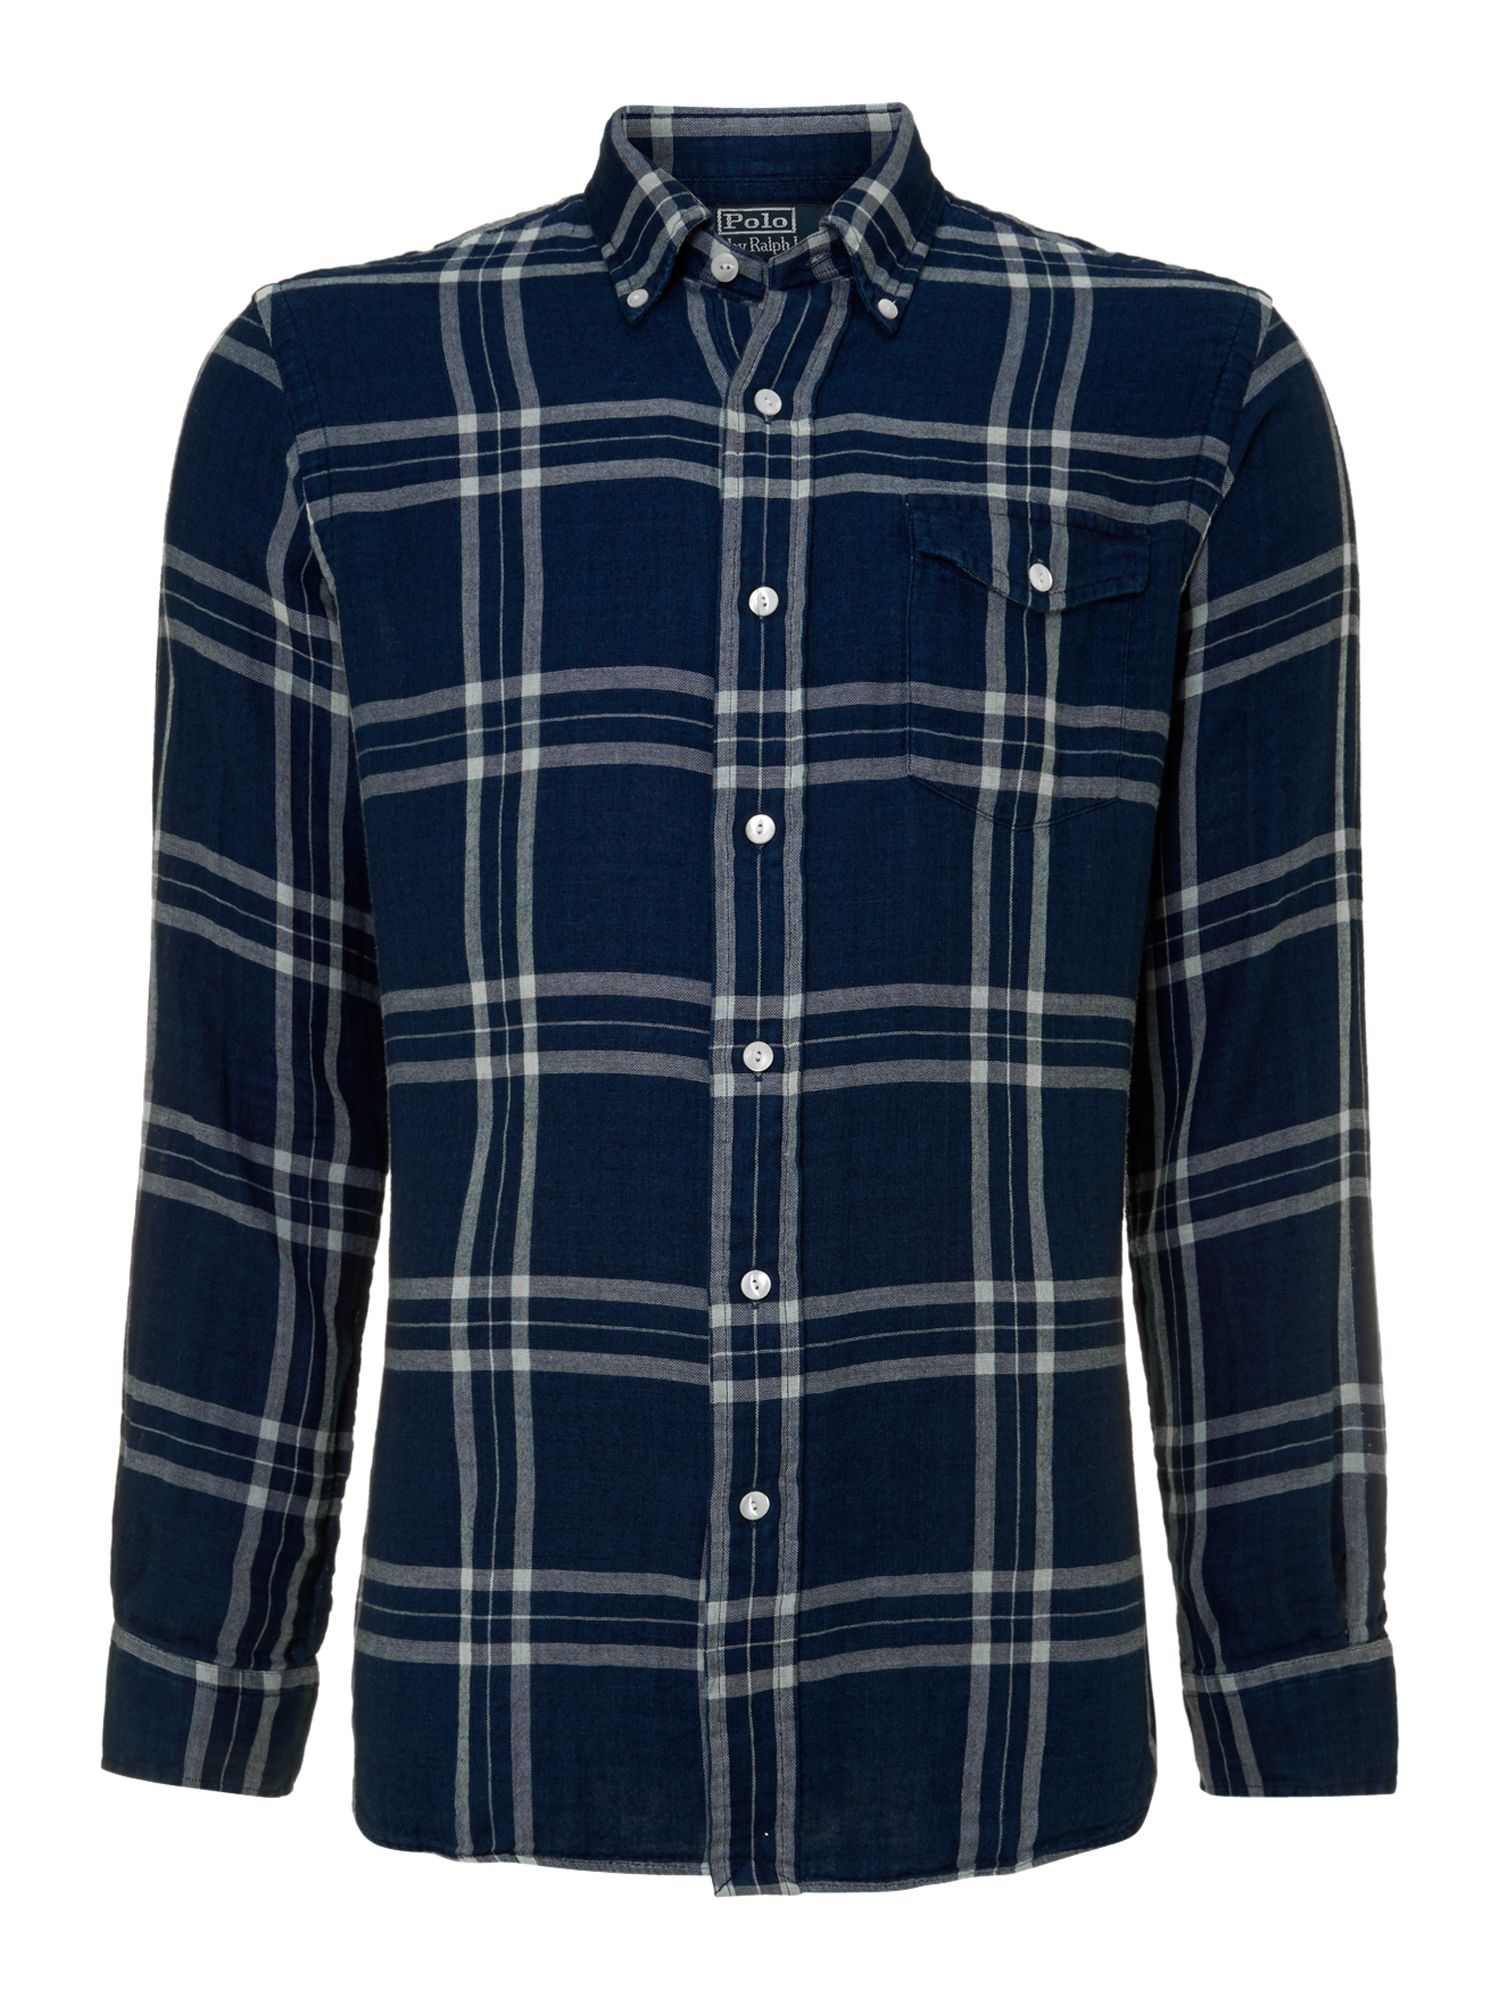 Large check shirt